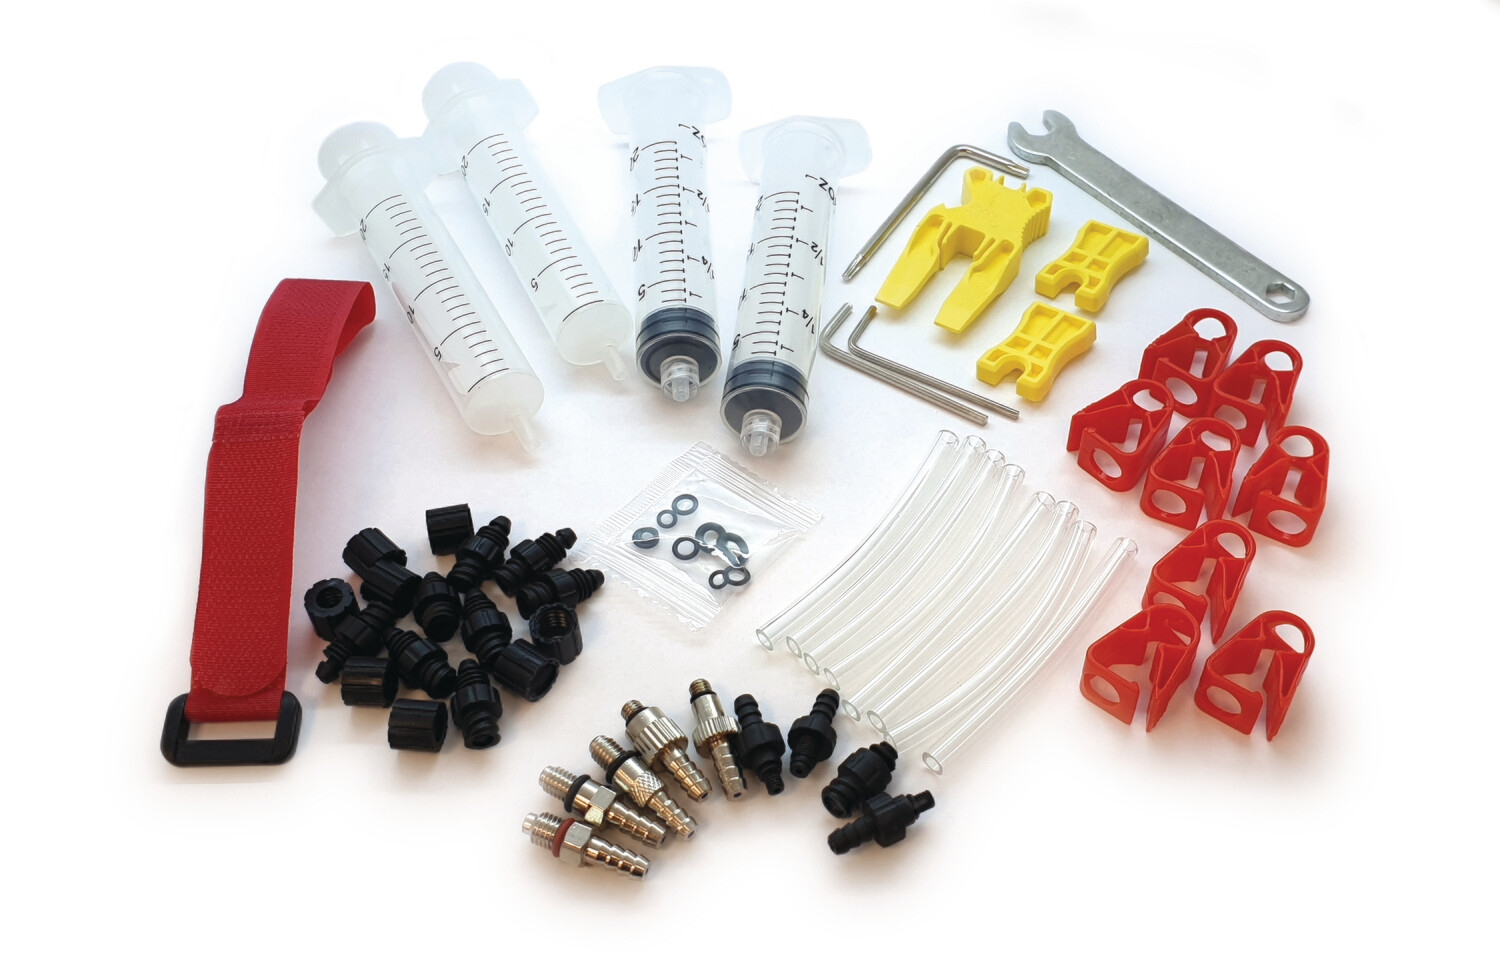 Mineral Oil - Pro Bleed Kit Suitable for Tektro, Shimano, Magura, Giant, Bengal, Hayes, Zoom, Alhonga